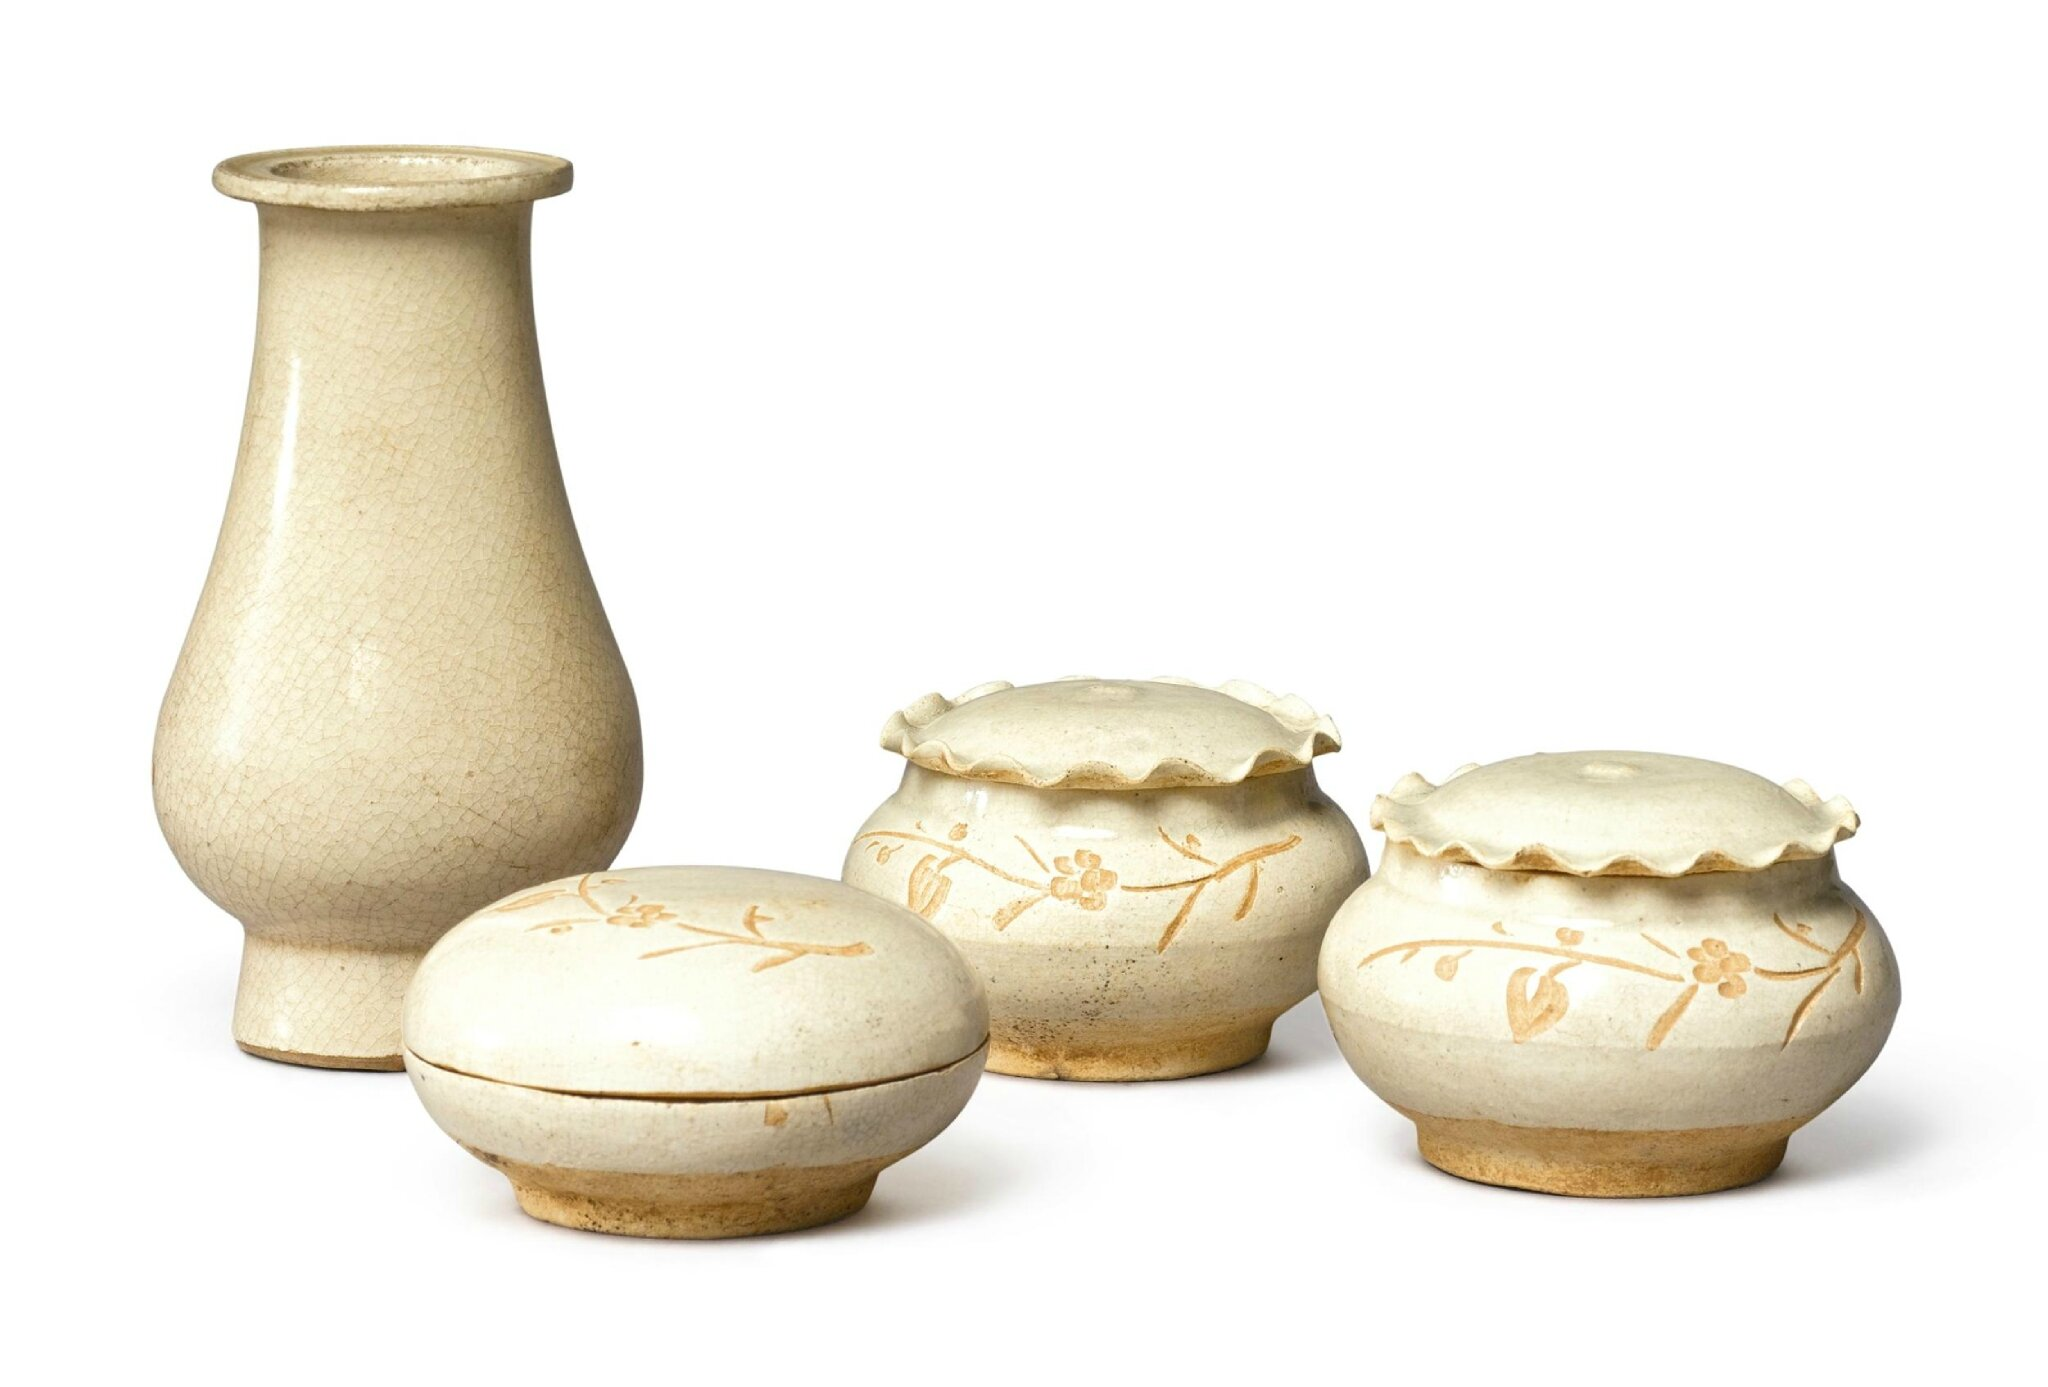 Three 'Jizhou' resist-decorated 'prunus' wares, Southern Song dynasty (1127–1279)